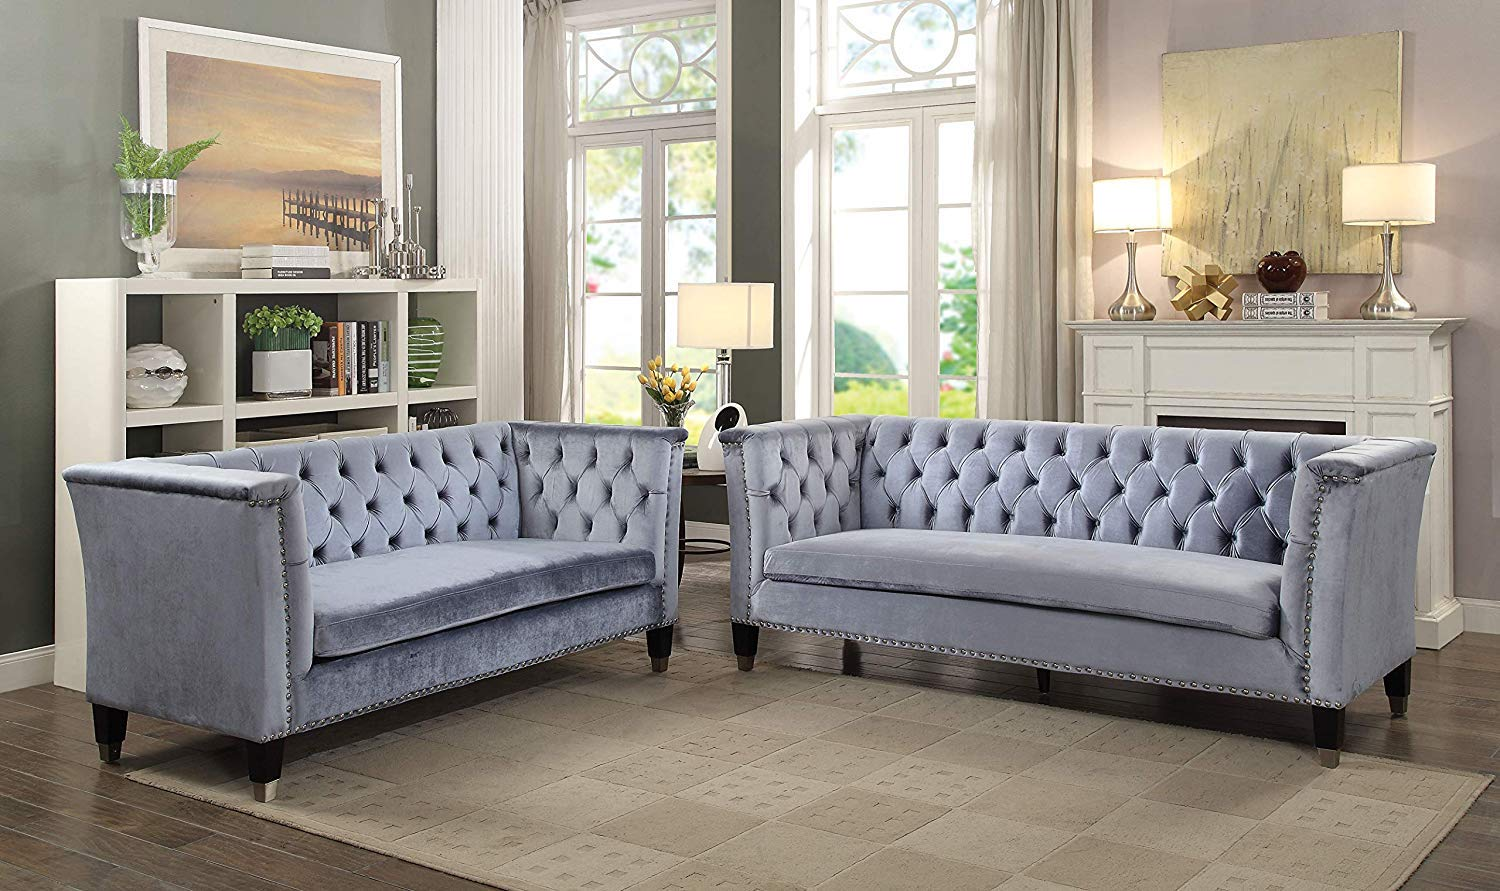 ACME Honor Sofa - 52785 - Blue-Gray Velvet